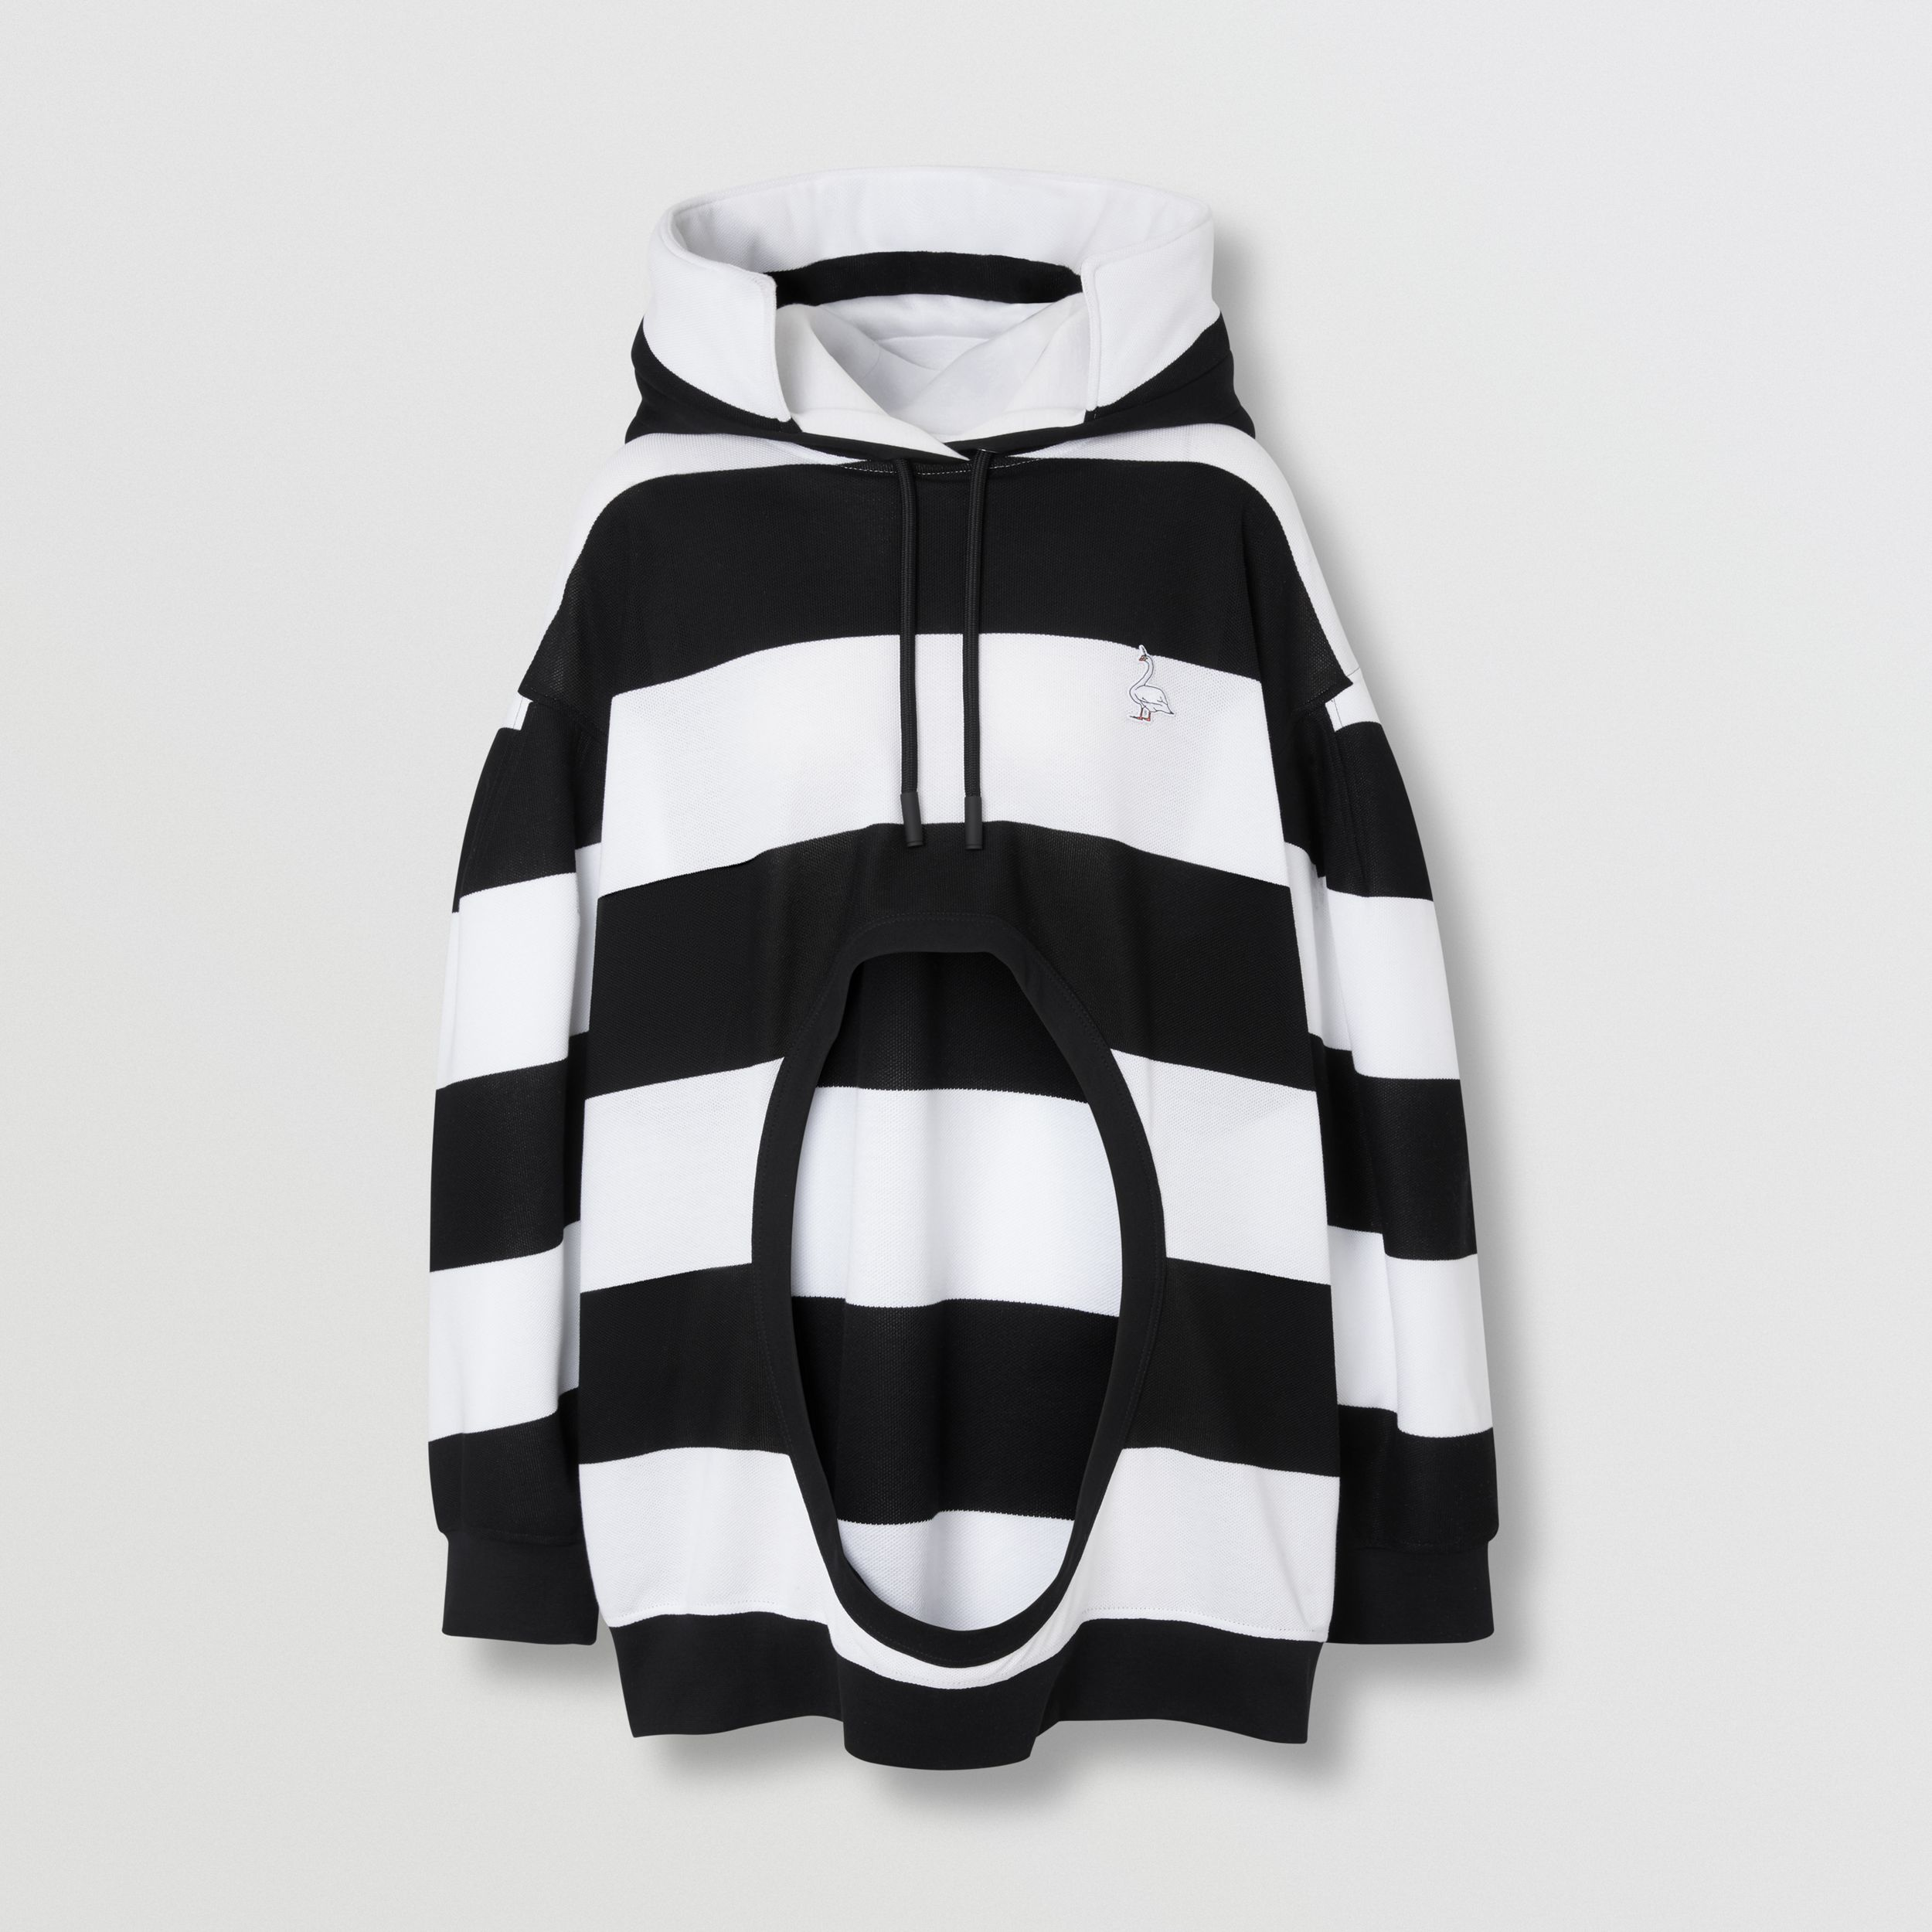 Swan Motif Cut-out Detail Cotton Oversized Hoodie in Black - Women | Burberry - 4